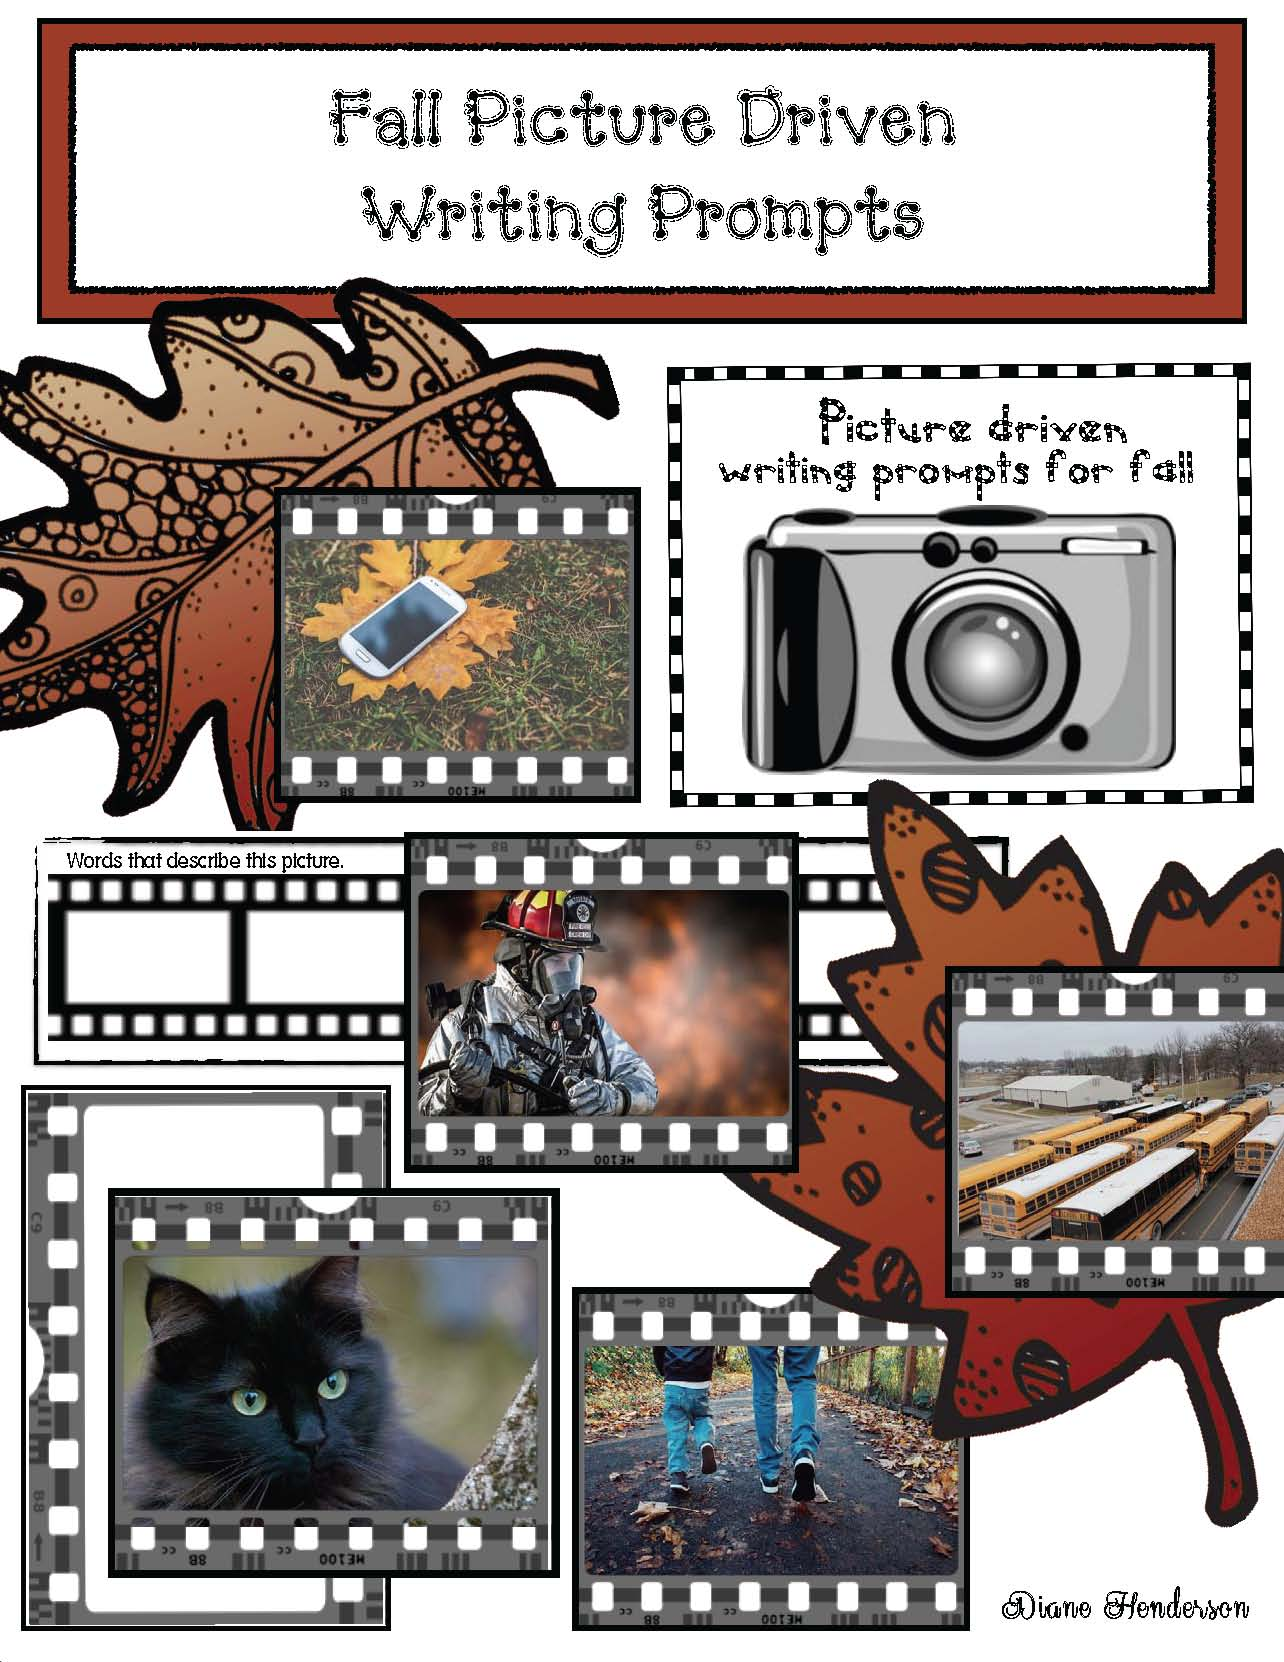 writing prompts, writing prompts for fall, october writing prompts, september writing prompts, apple writing prompts, halloween writing prompts, fire safety writing prompts, november writing prompts, thanksgiving writing prompts